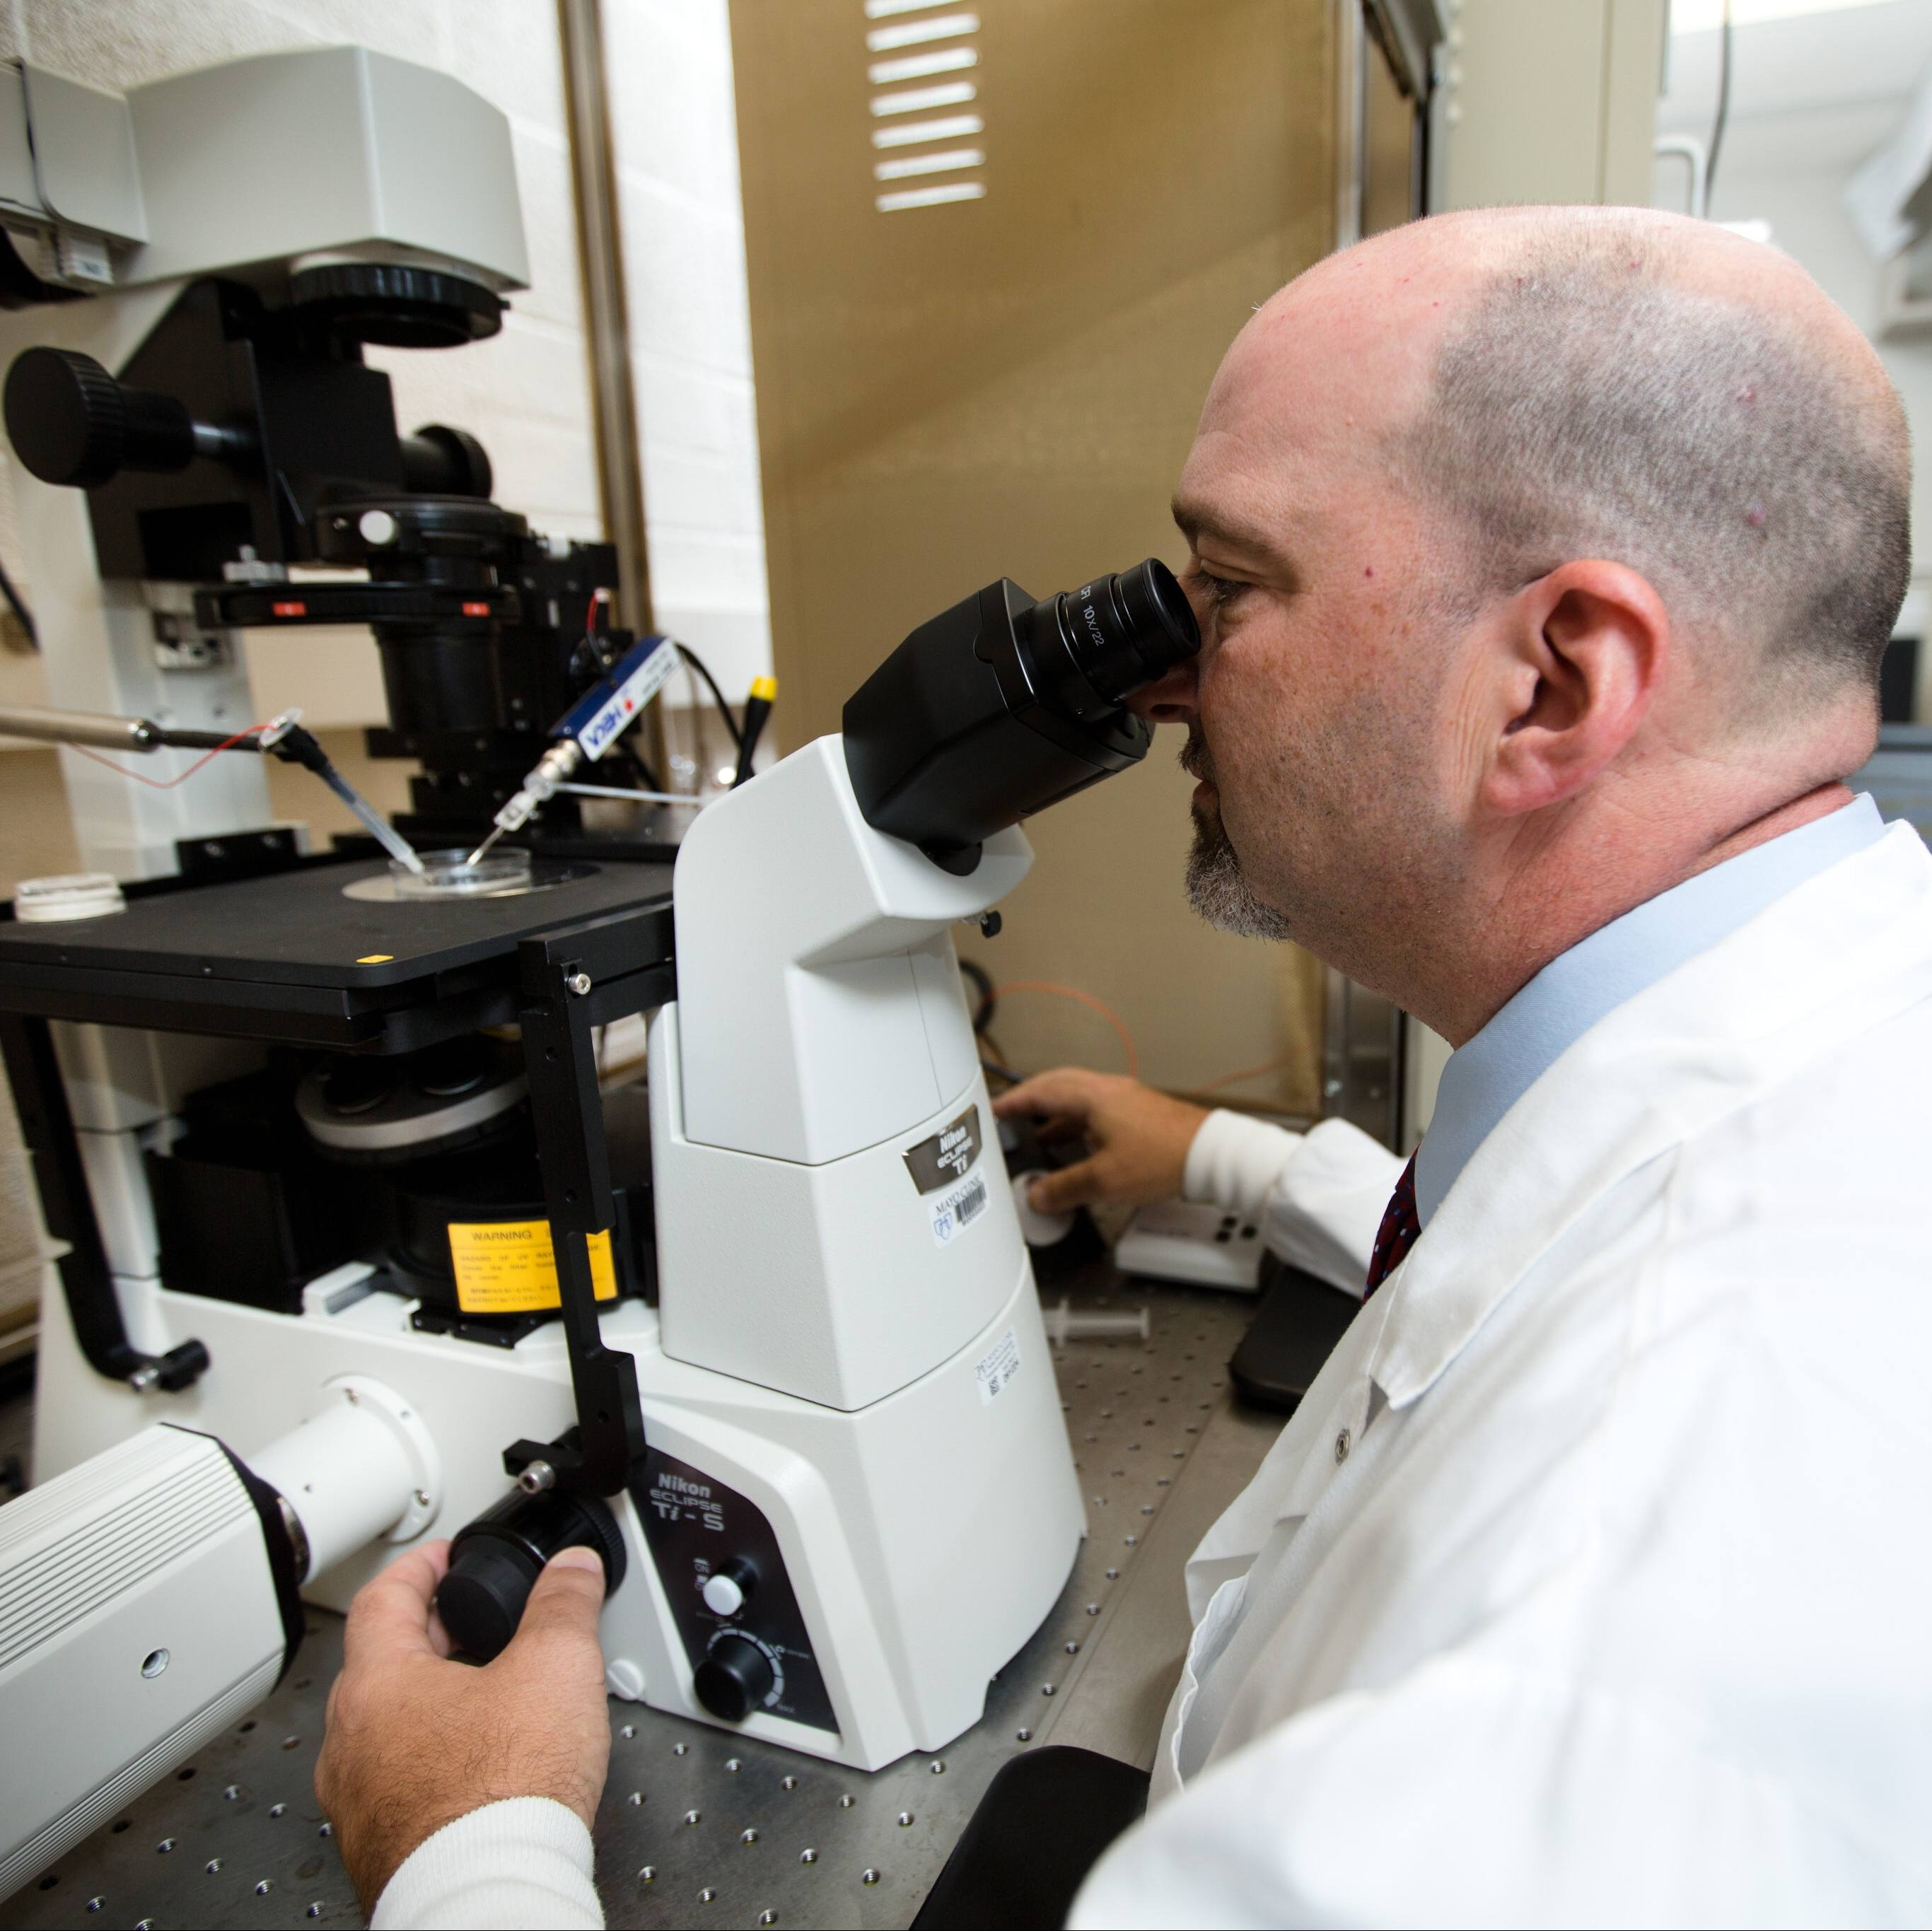 Alan Marmorstein, PhD a researcher looking through a microscope in a laboratory